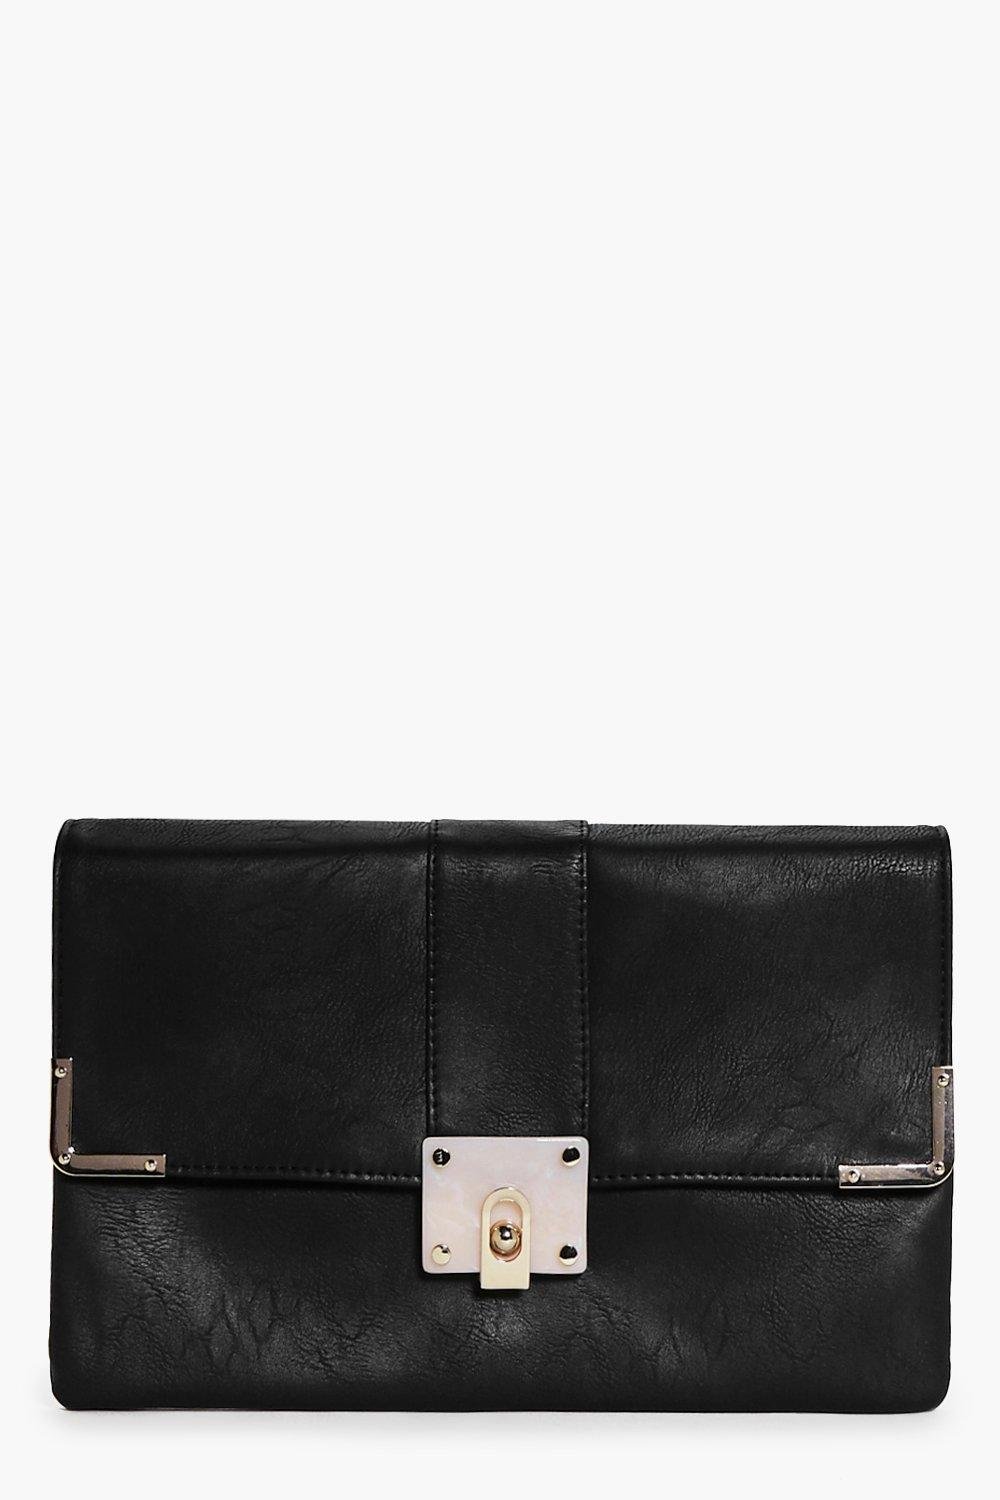 Marble Clasp Detail Clutch Bag black